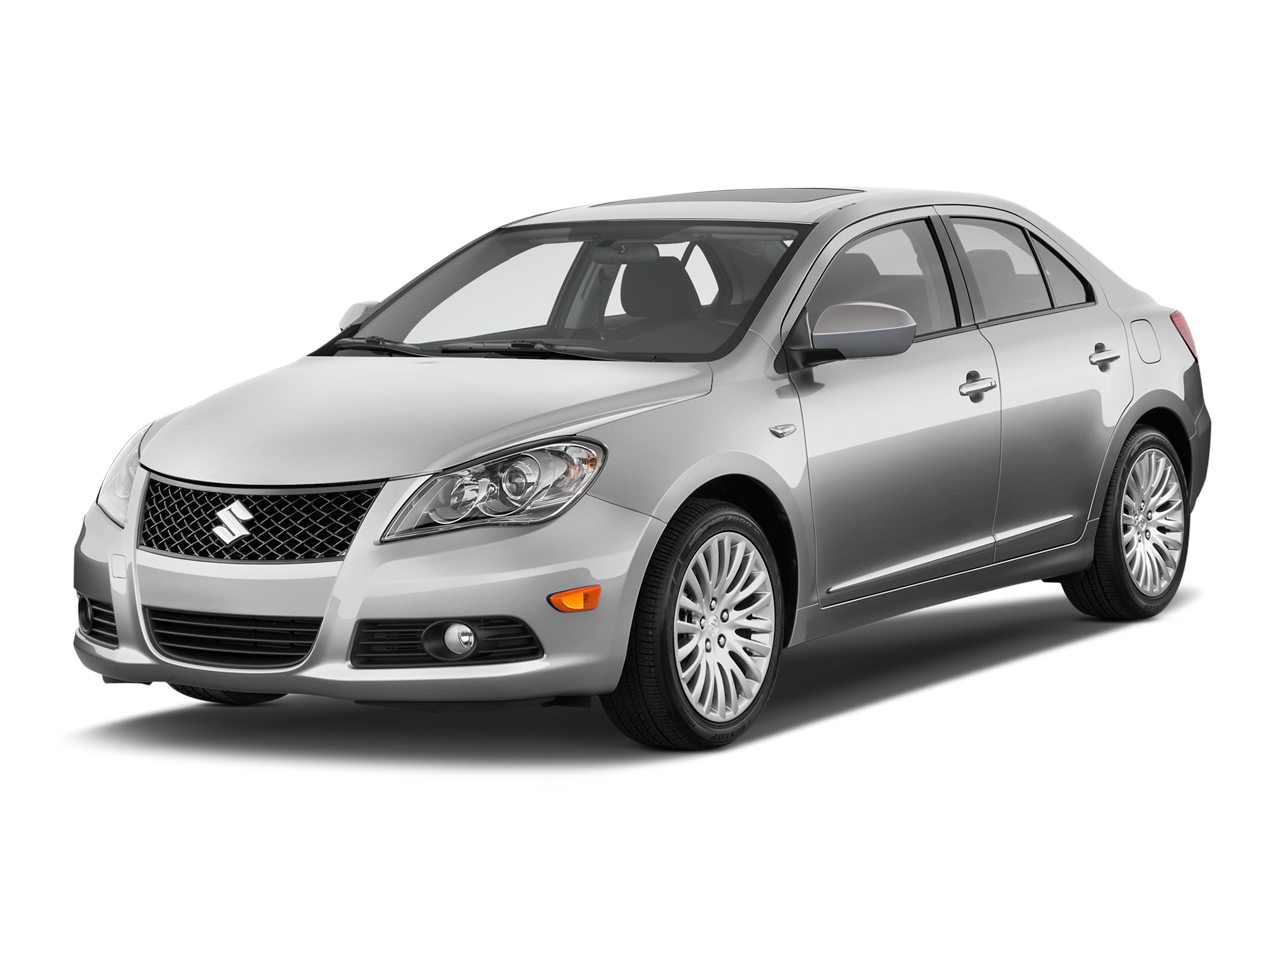 Suzuki Kizashi Sport GTS Leather 4dr Sedan #13